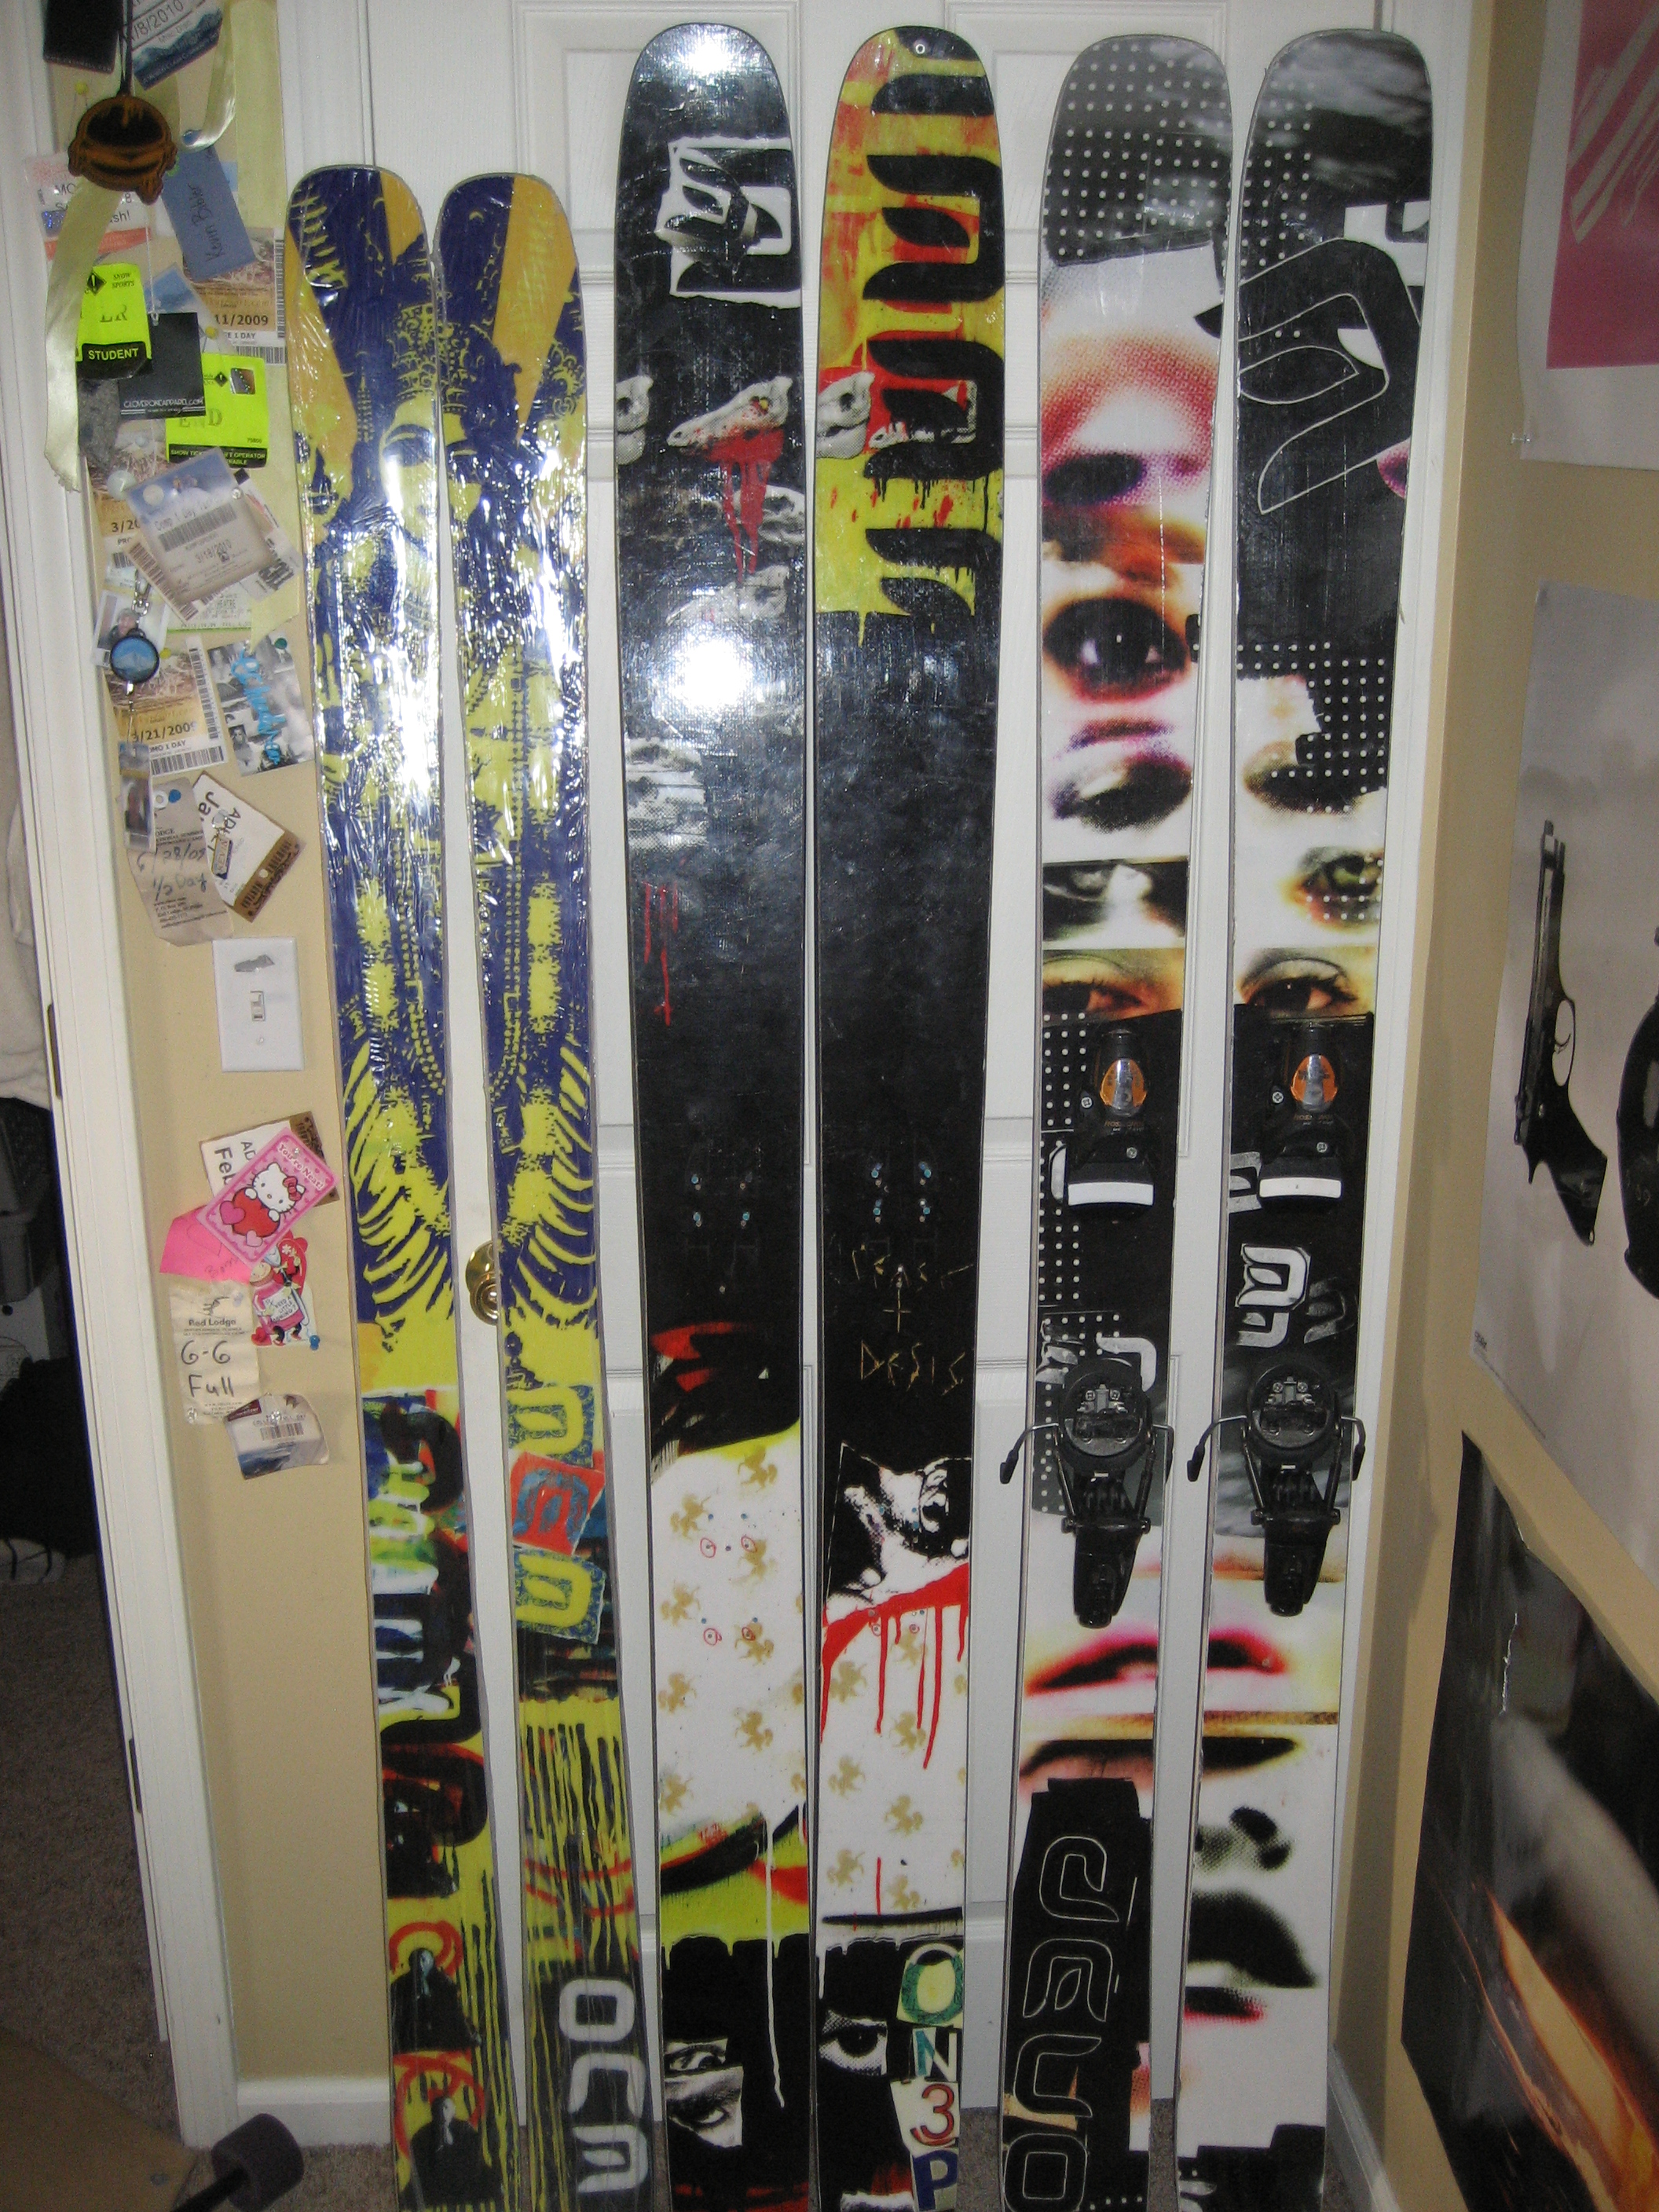 ON3P side of the quiver